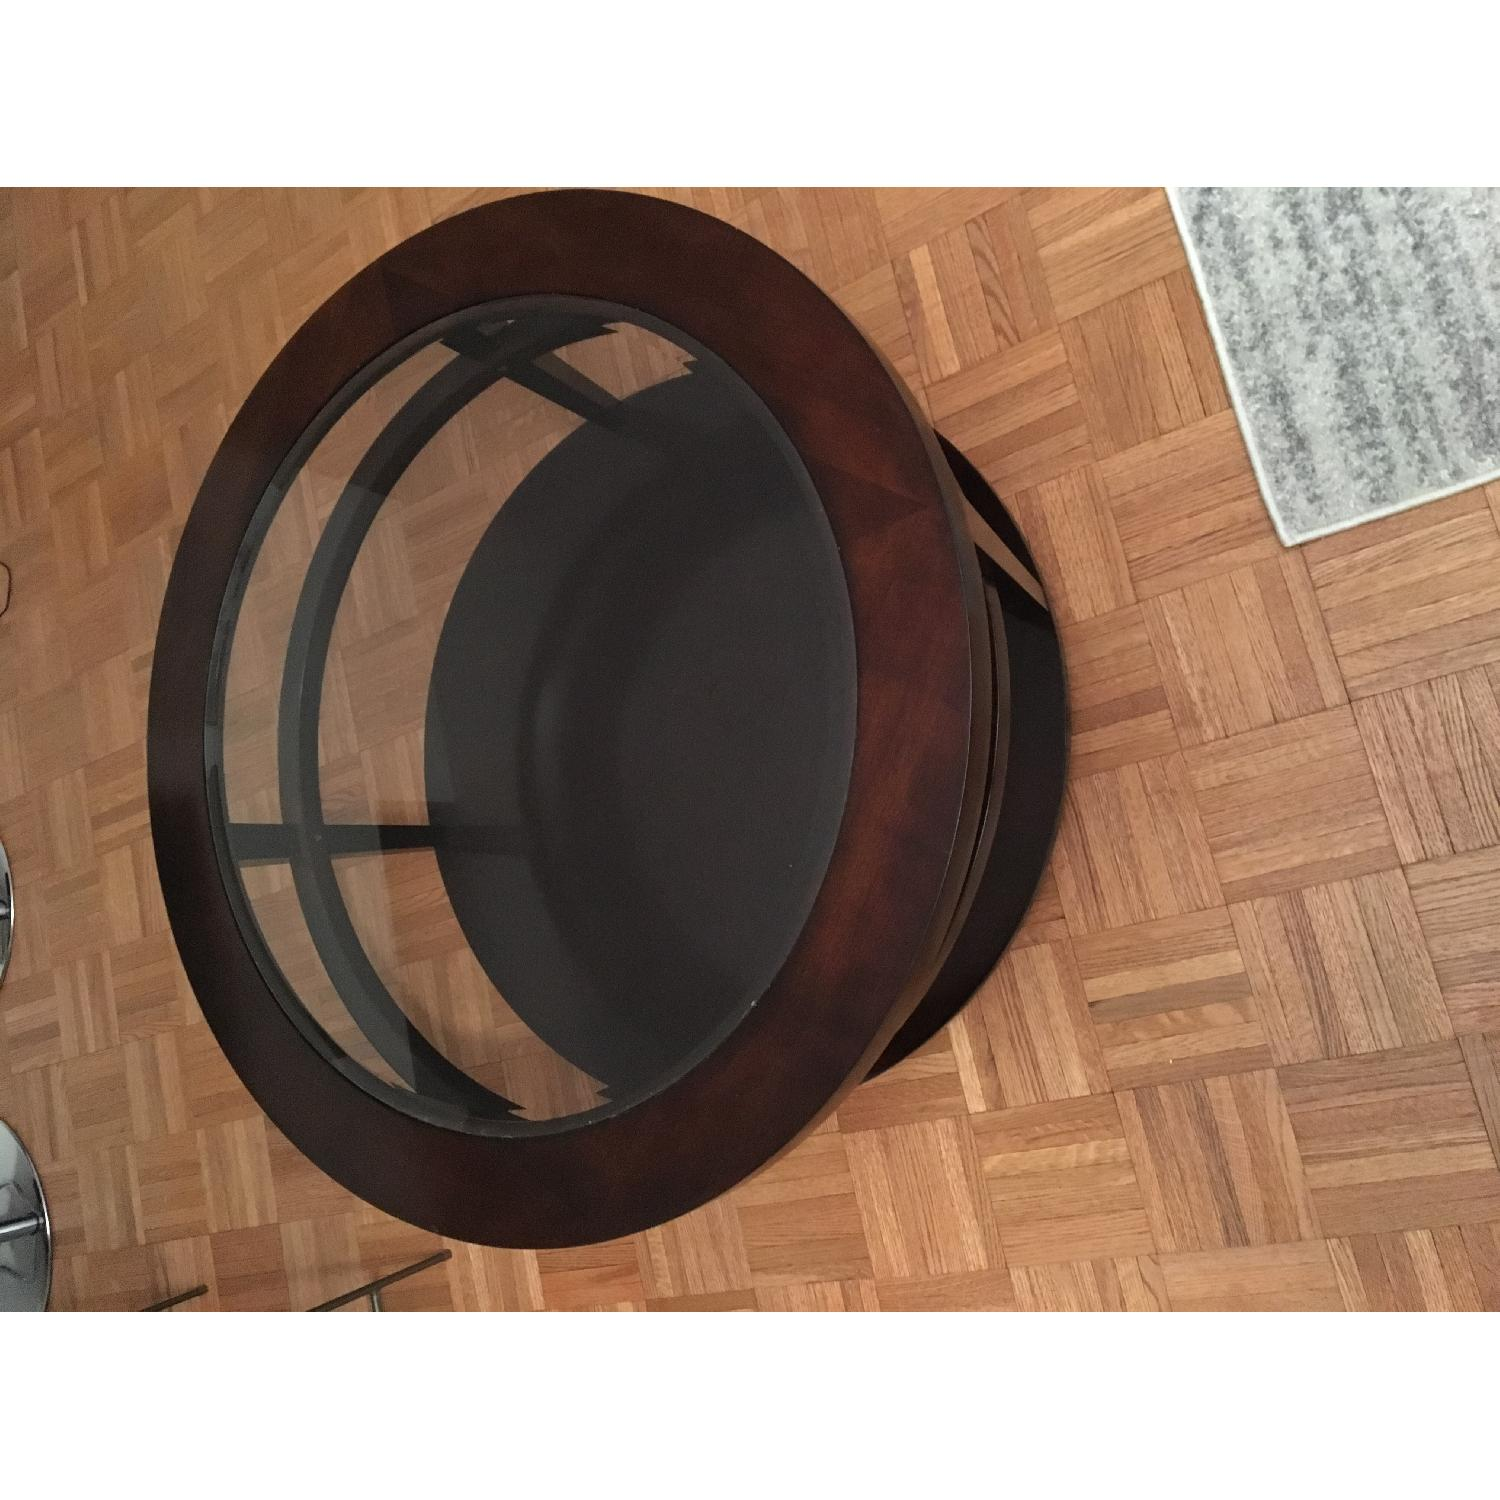 Macy's Round Wood/Glass Coffee Table on Casters - image-1